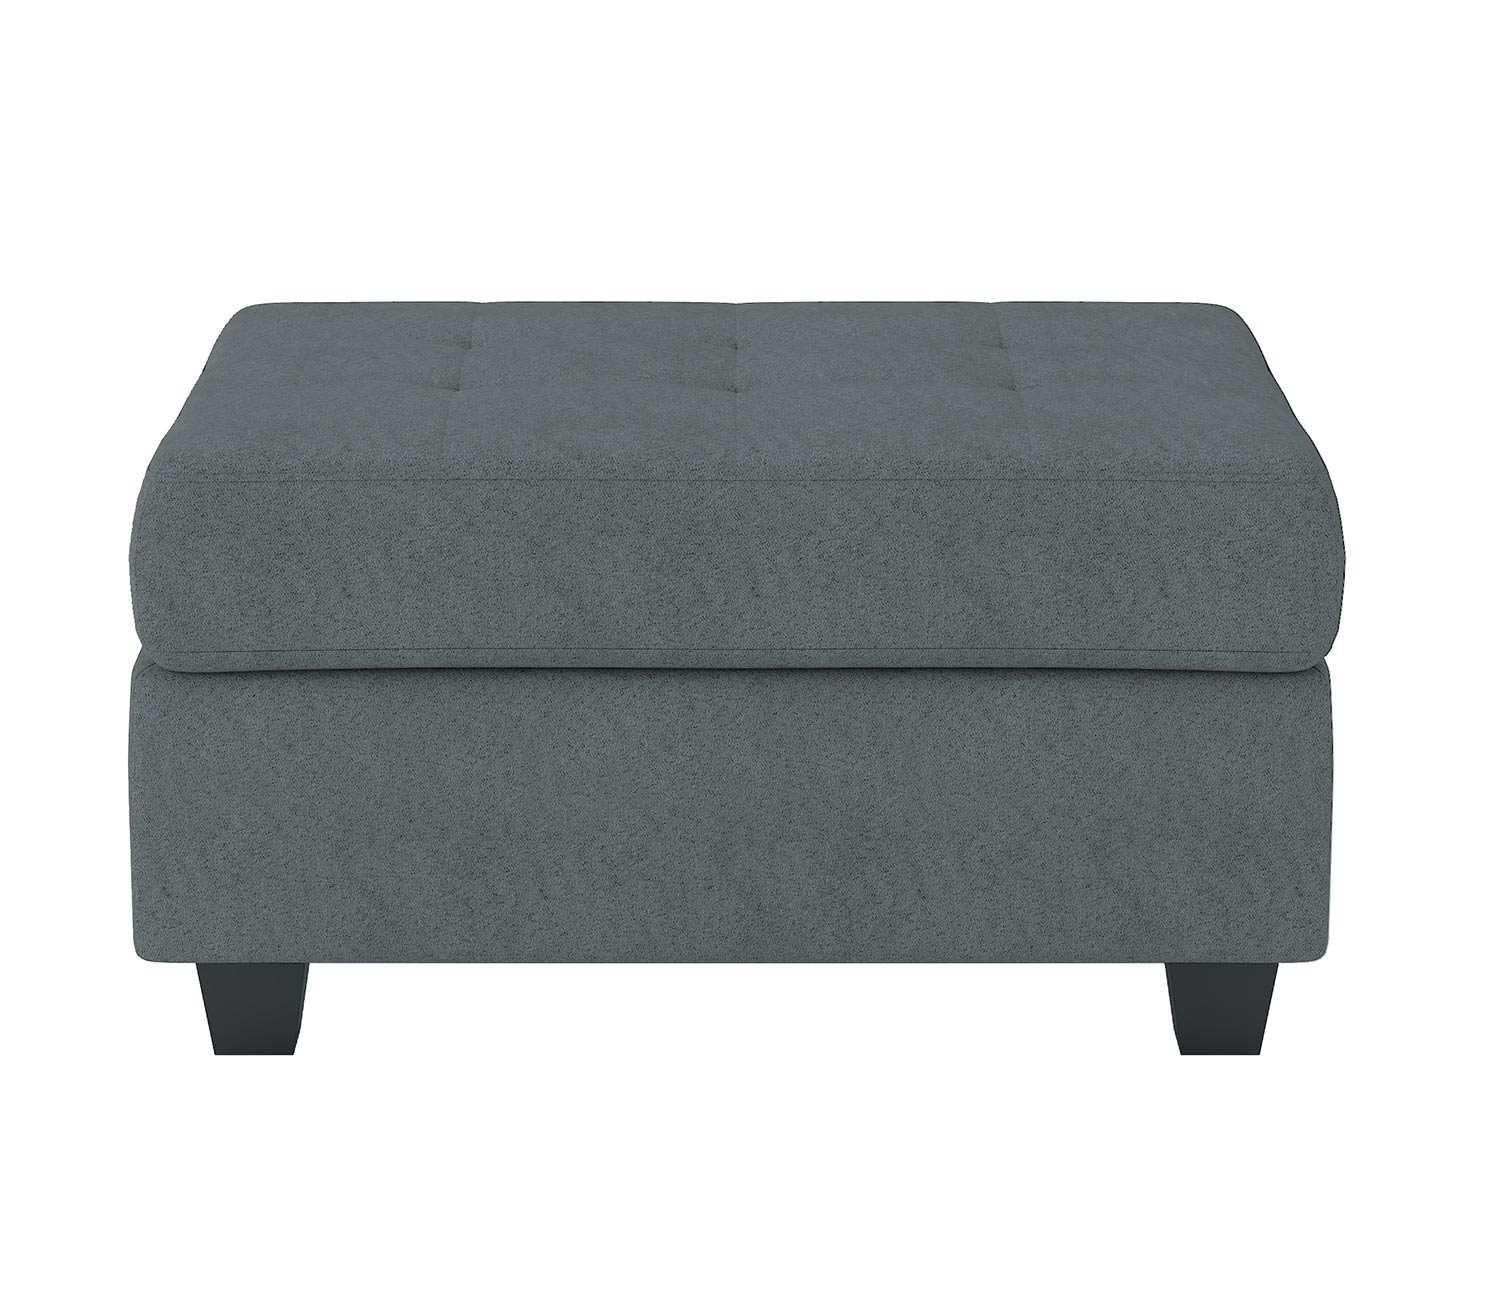 Homelegance Maston Storage Ottoman - Dark gray